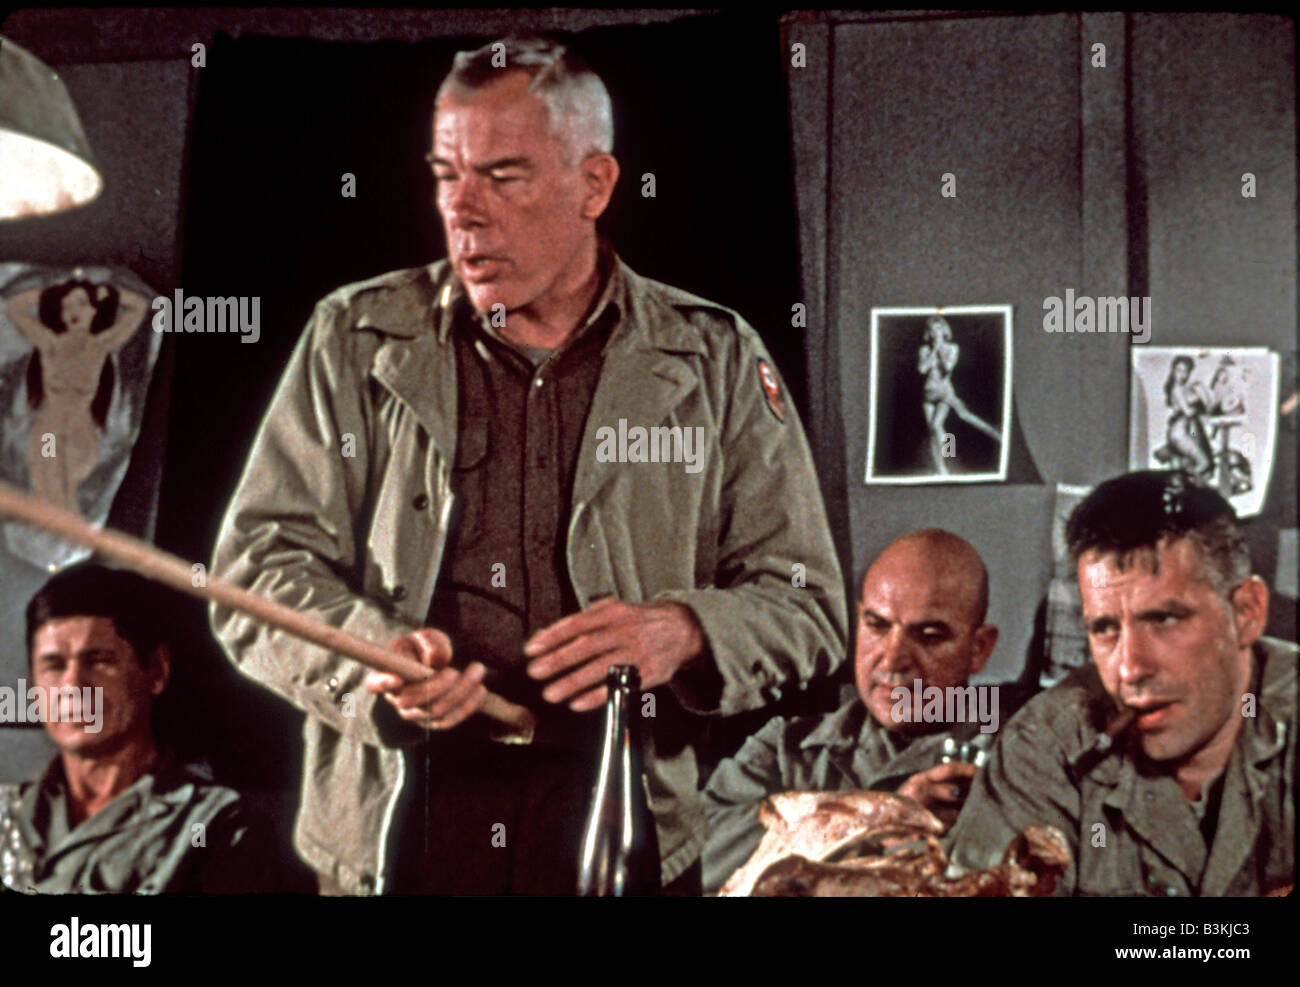 the dirty dozen 1967 mgm film with lee marvin stock photo: 19485875